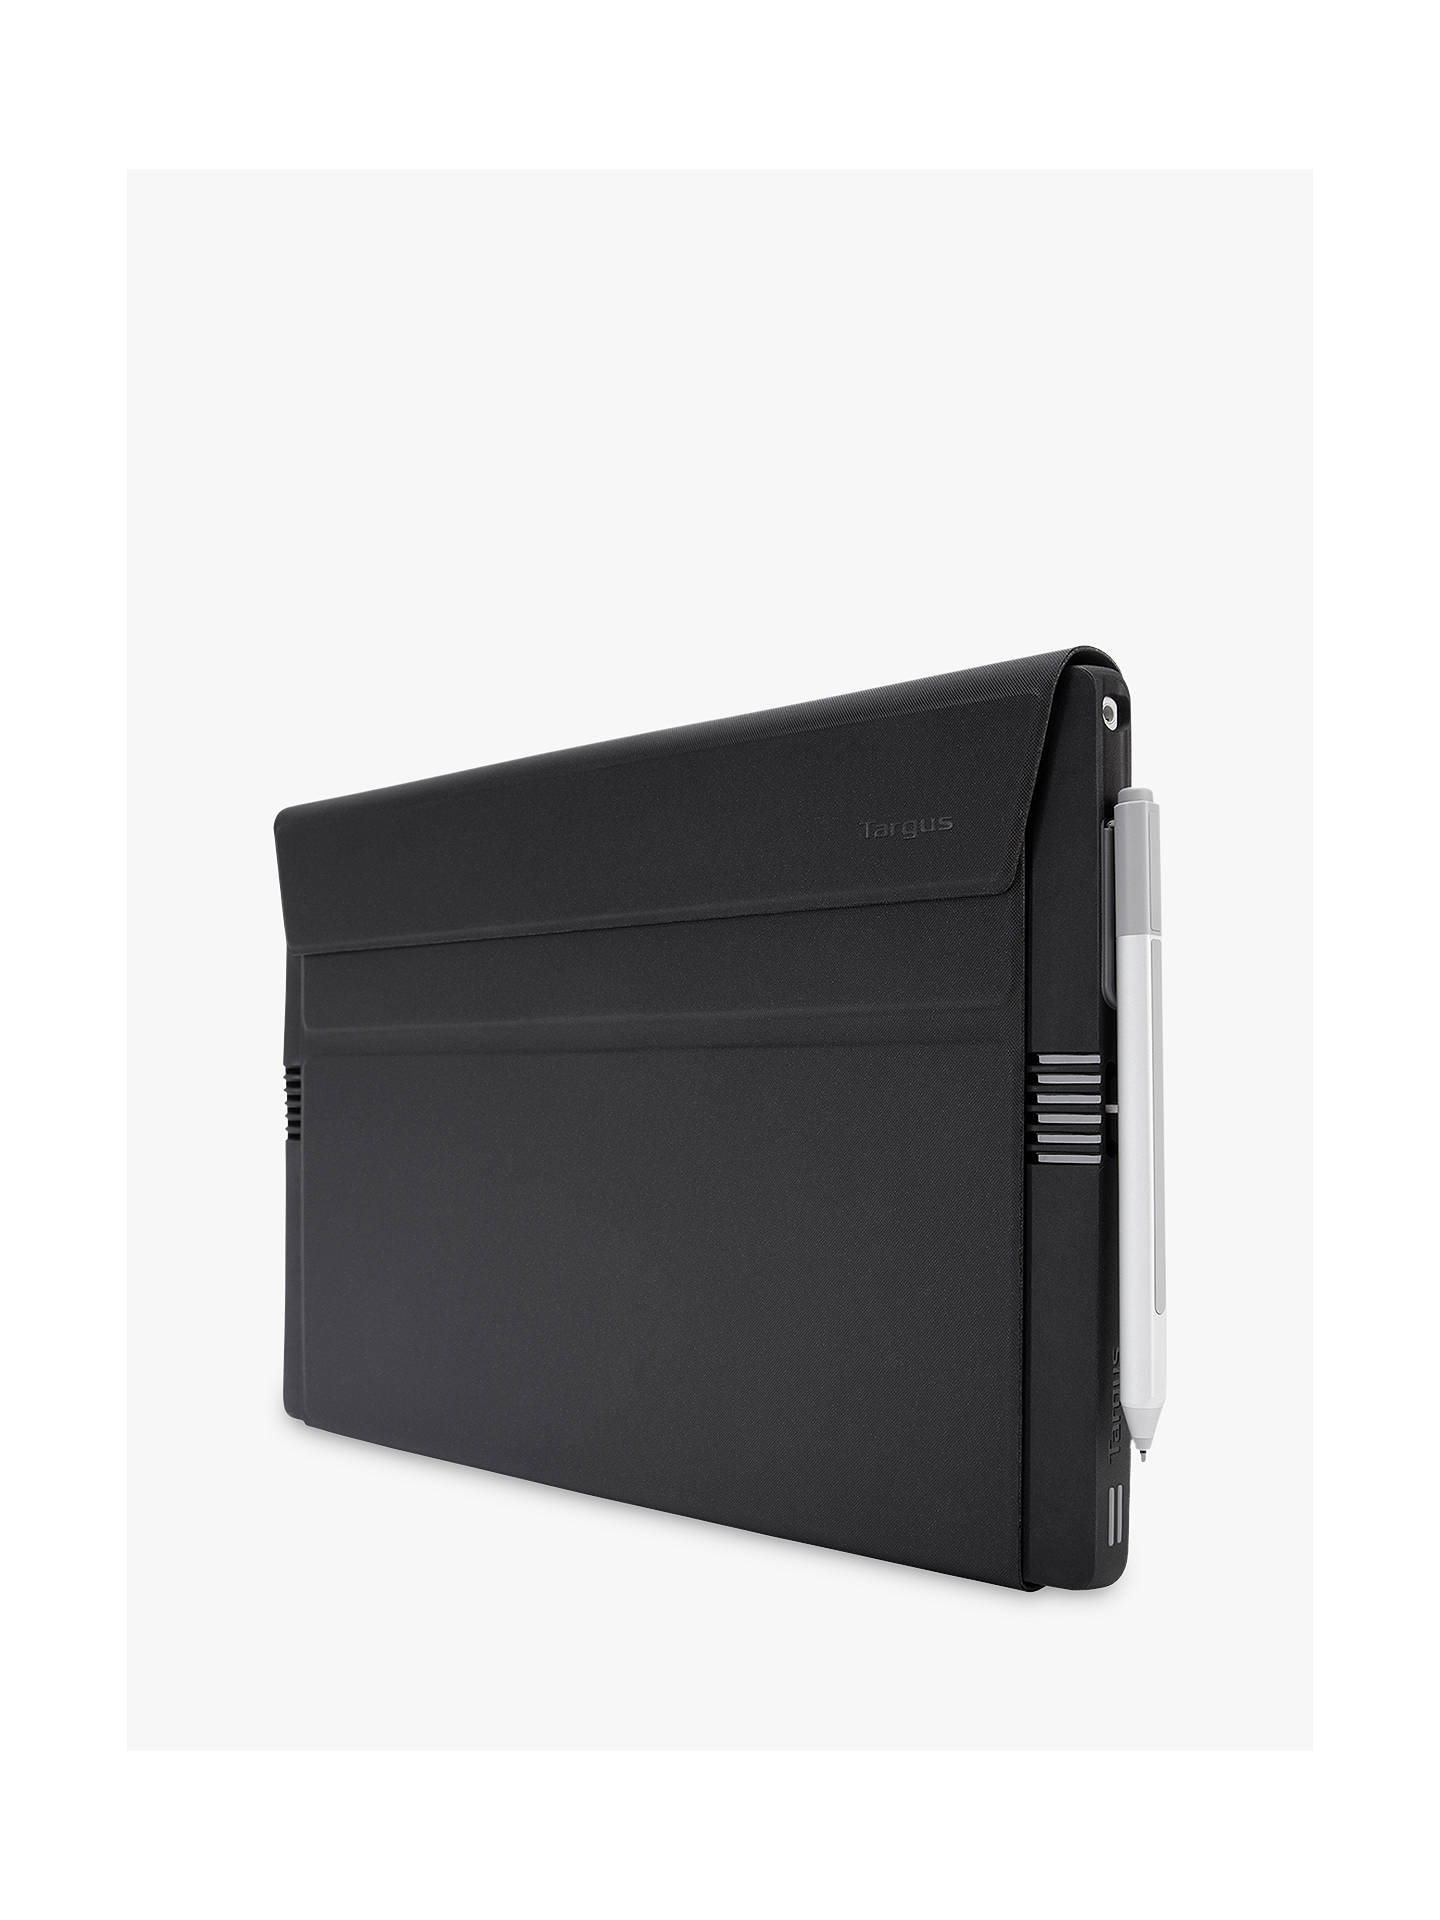 BuyTargus Foliowrap Case for Microsoft Surface Pro 4 Online at johnlewis.com